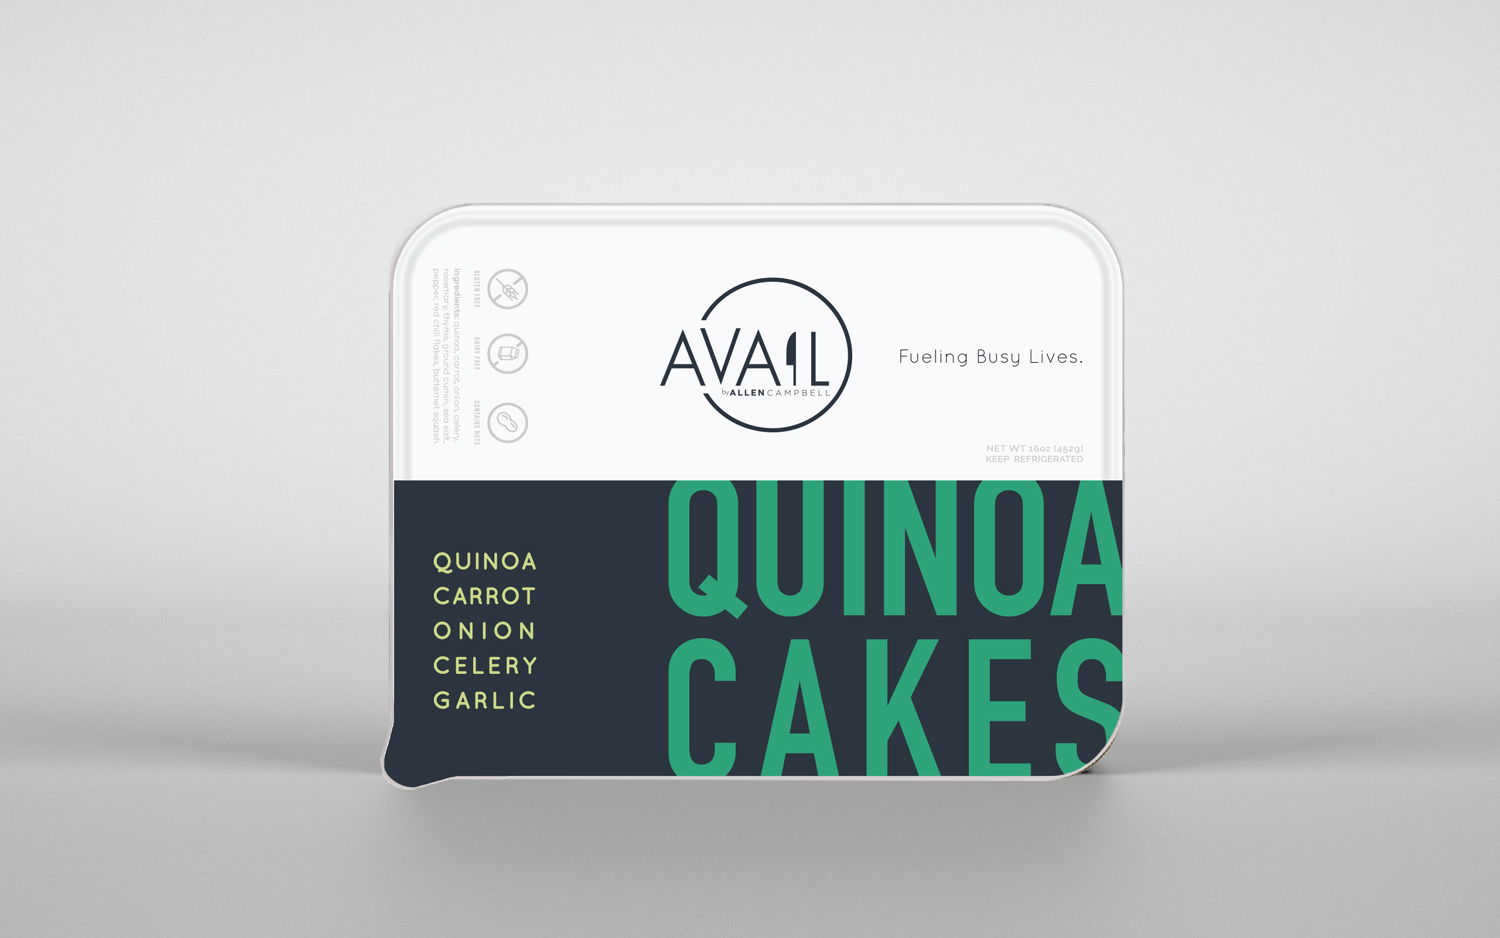 AvailFoods_Packaging_QuinoaCakes.jpg